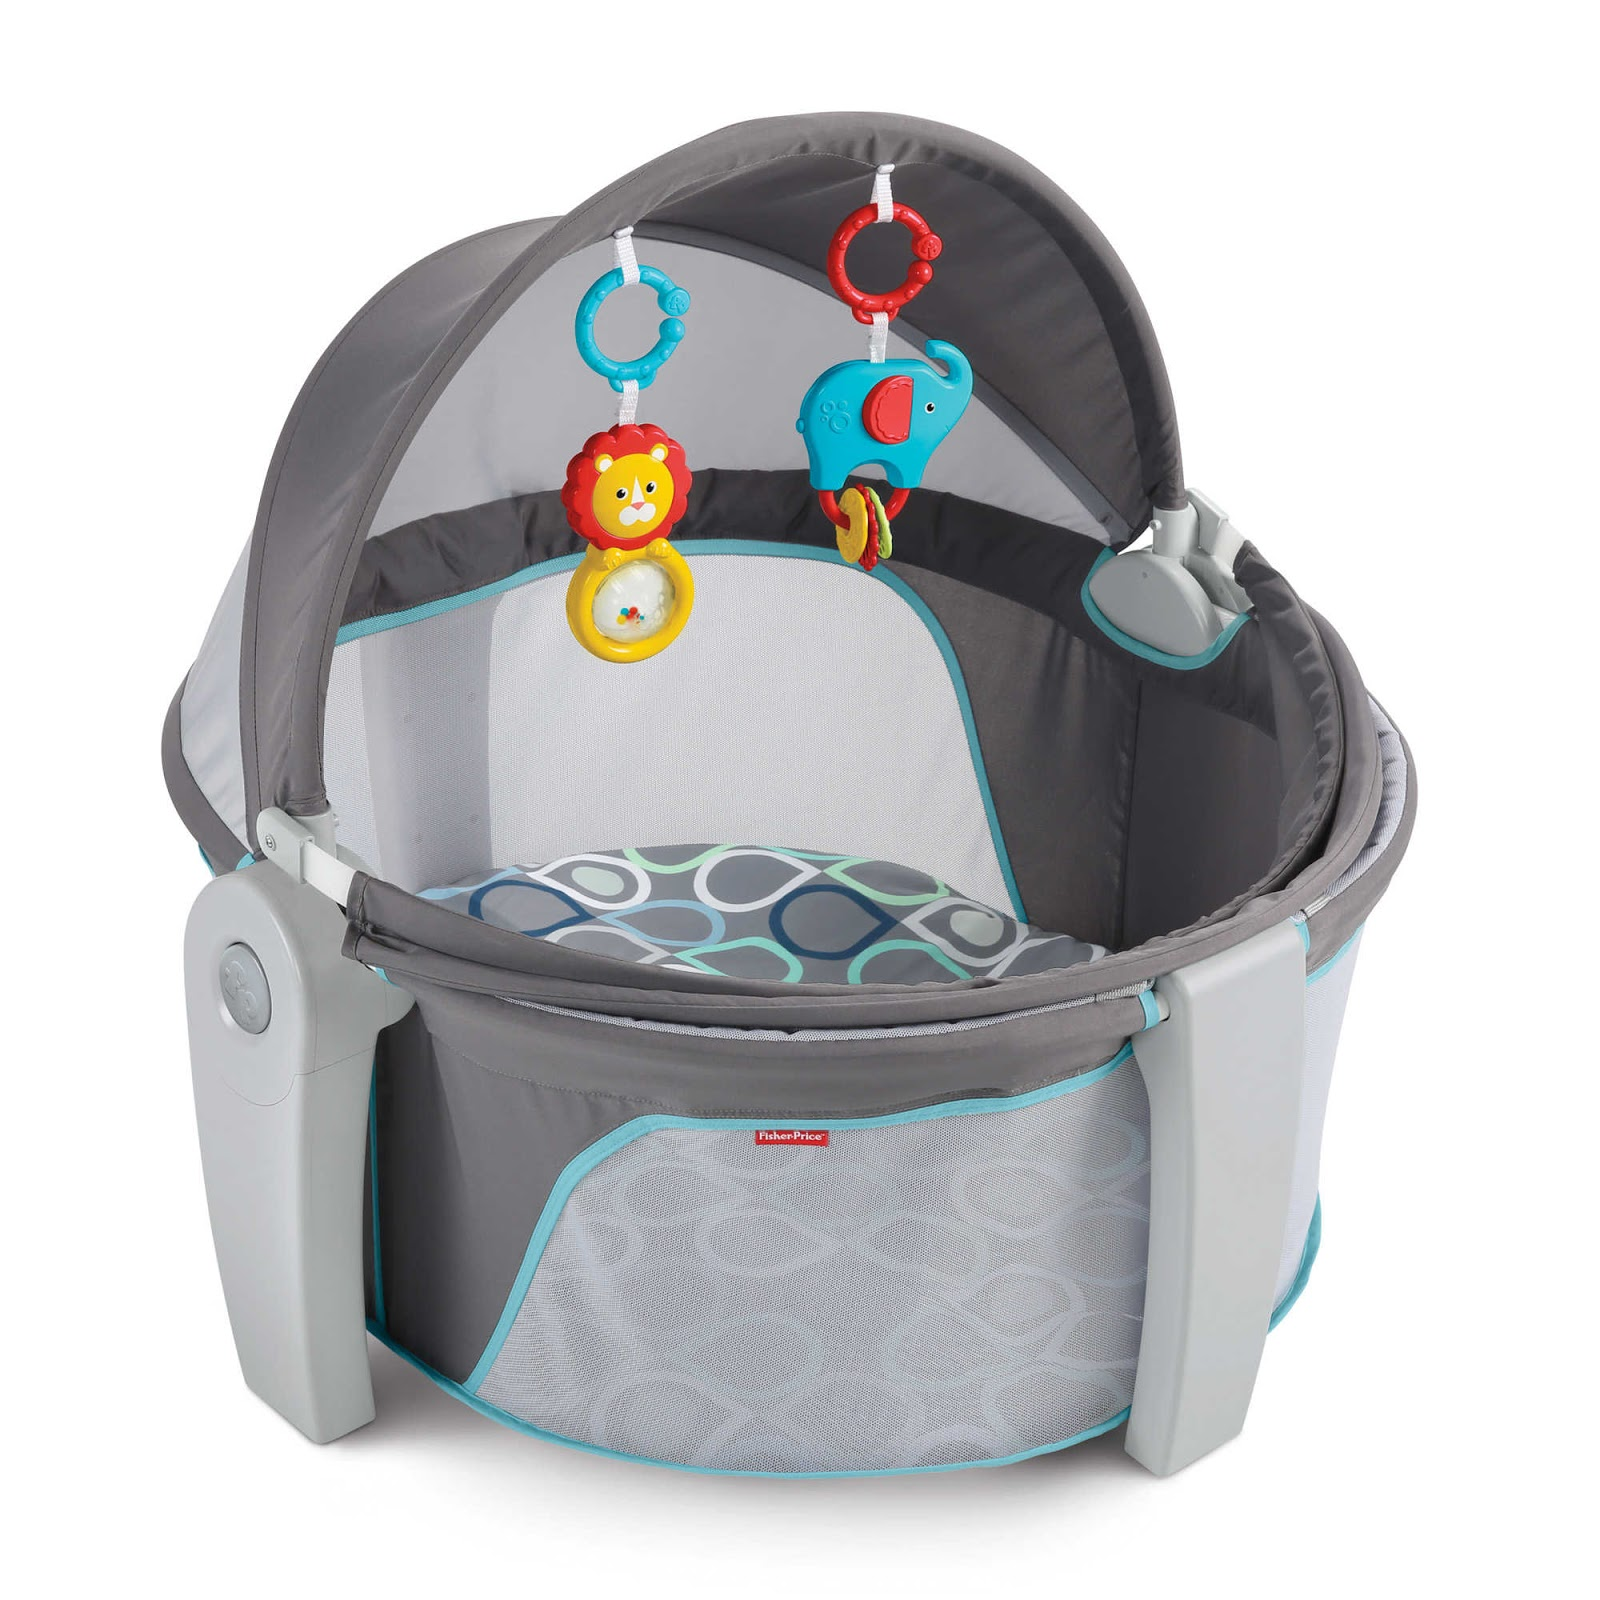 Fisher Price Releases On The Go Baby Dome Gear Files Block Prices Newest Playard Is Great For Both Indoors And Outdoors Canopy Extends Fully To Sunlight It Also Has An Easy Compact Fold